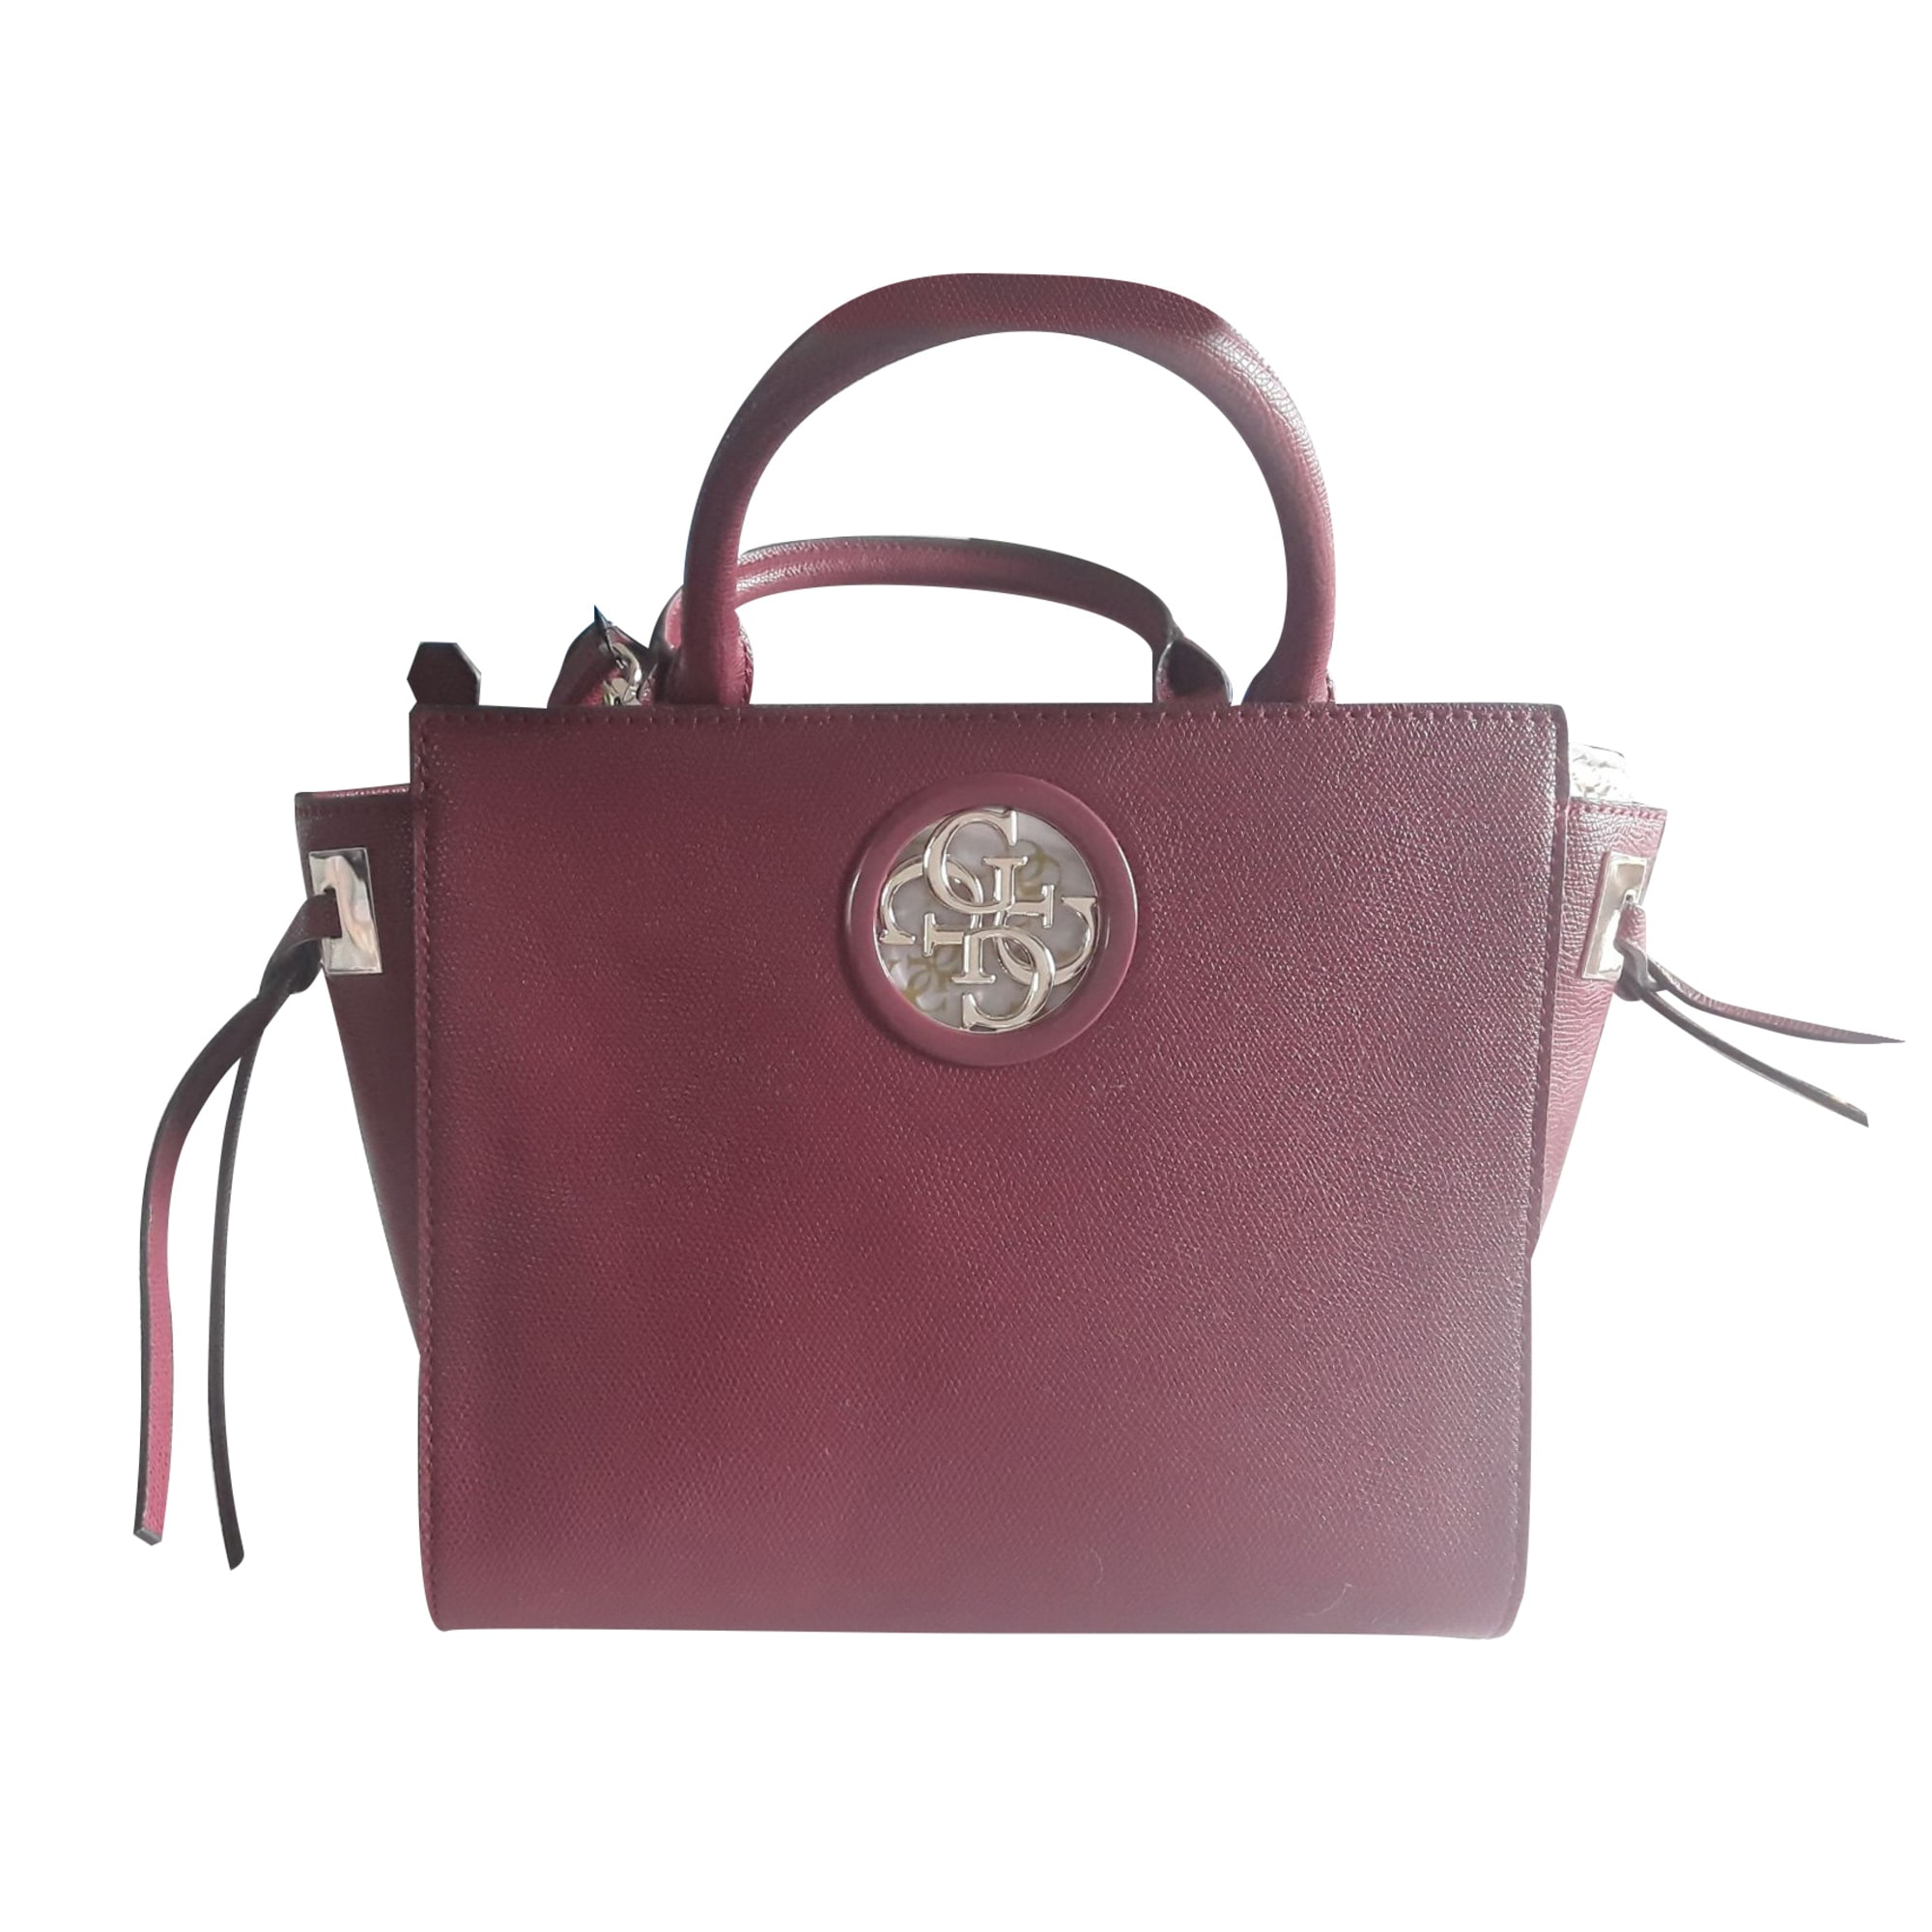 Leather Handbag GUESS Red, burgundy